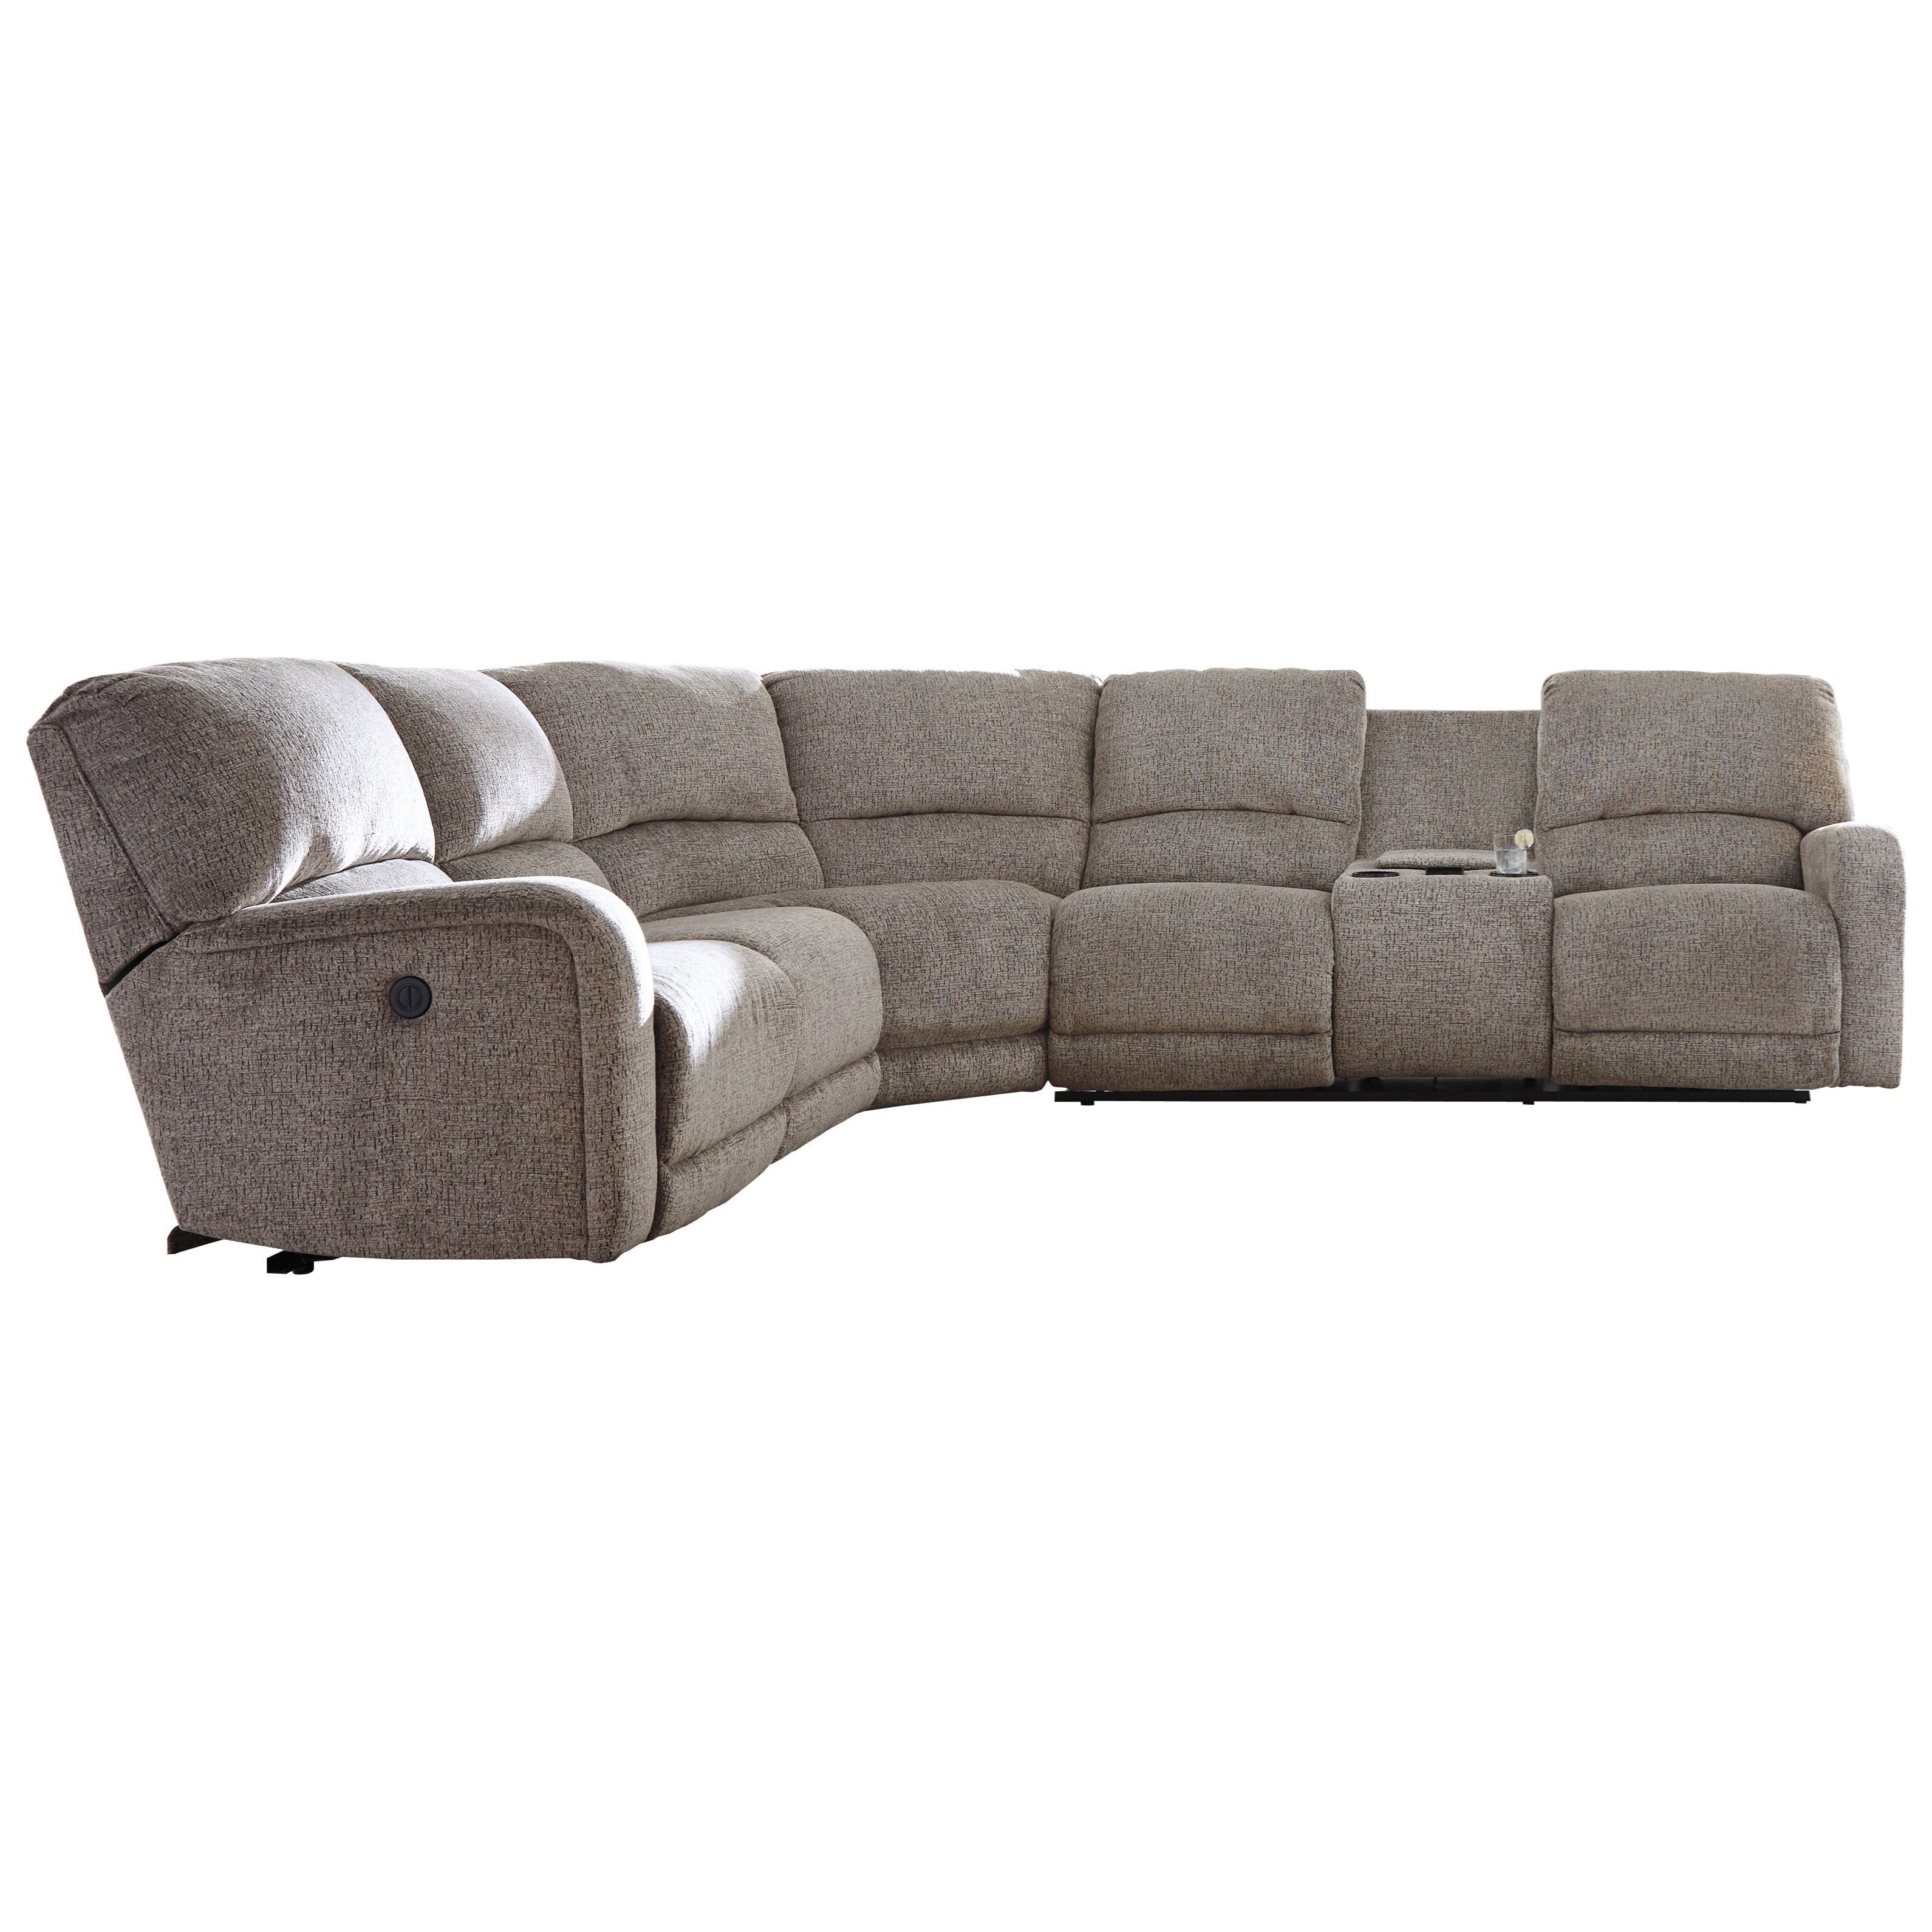 ashley signature design pittsfield power reclining sectional with right storage console loveseat. Black Bedroom Furniture Sets. Home Design Ideas